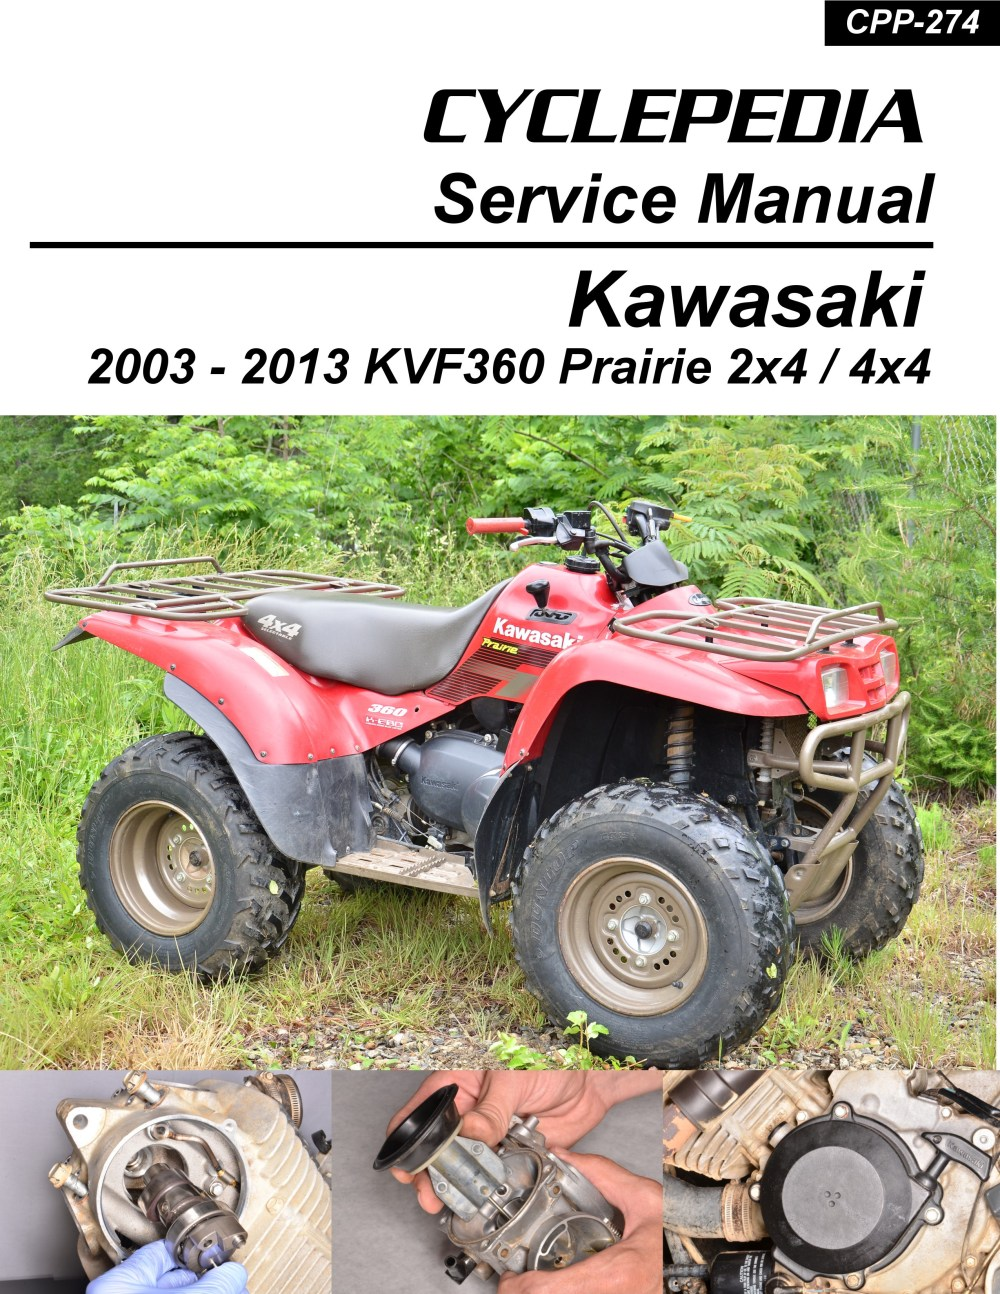 medium resolution of kawasaki kvf360 prairie printed cyclepedia atv service manual 1 jpg